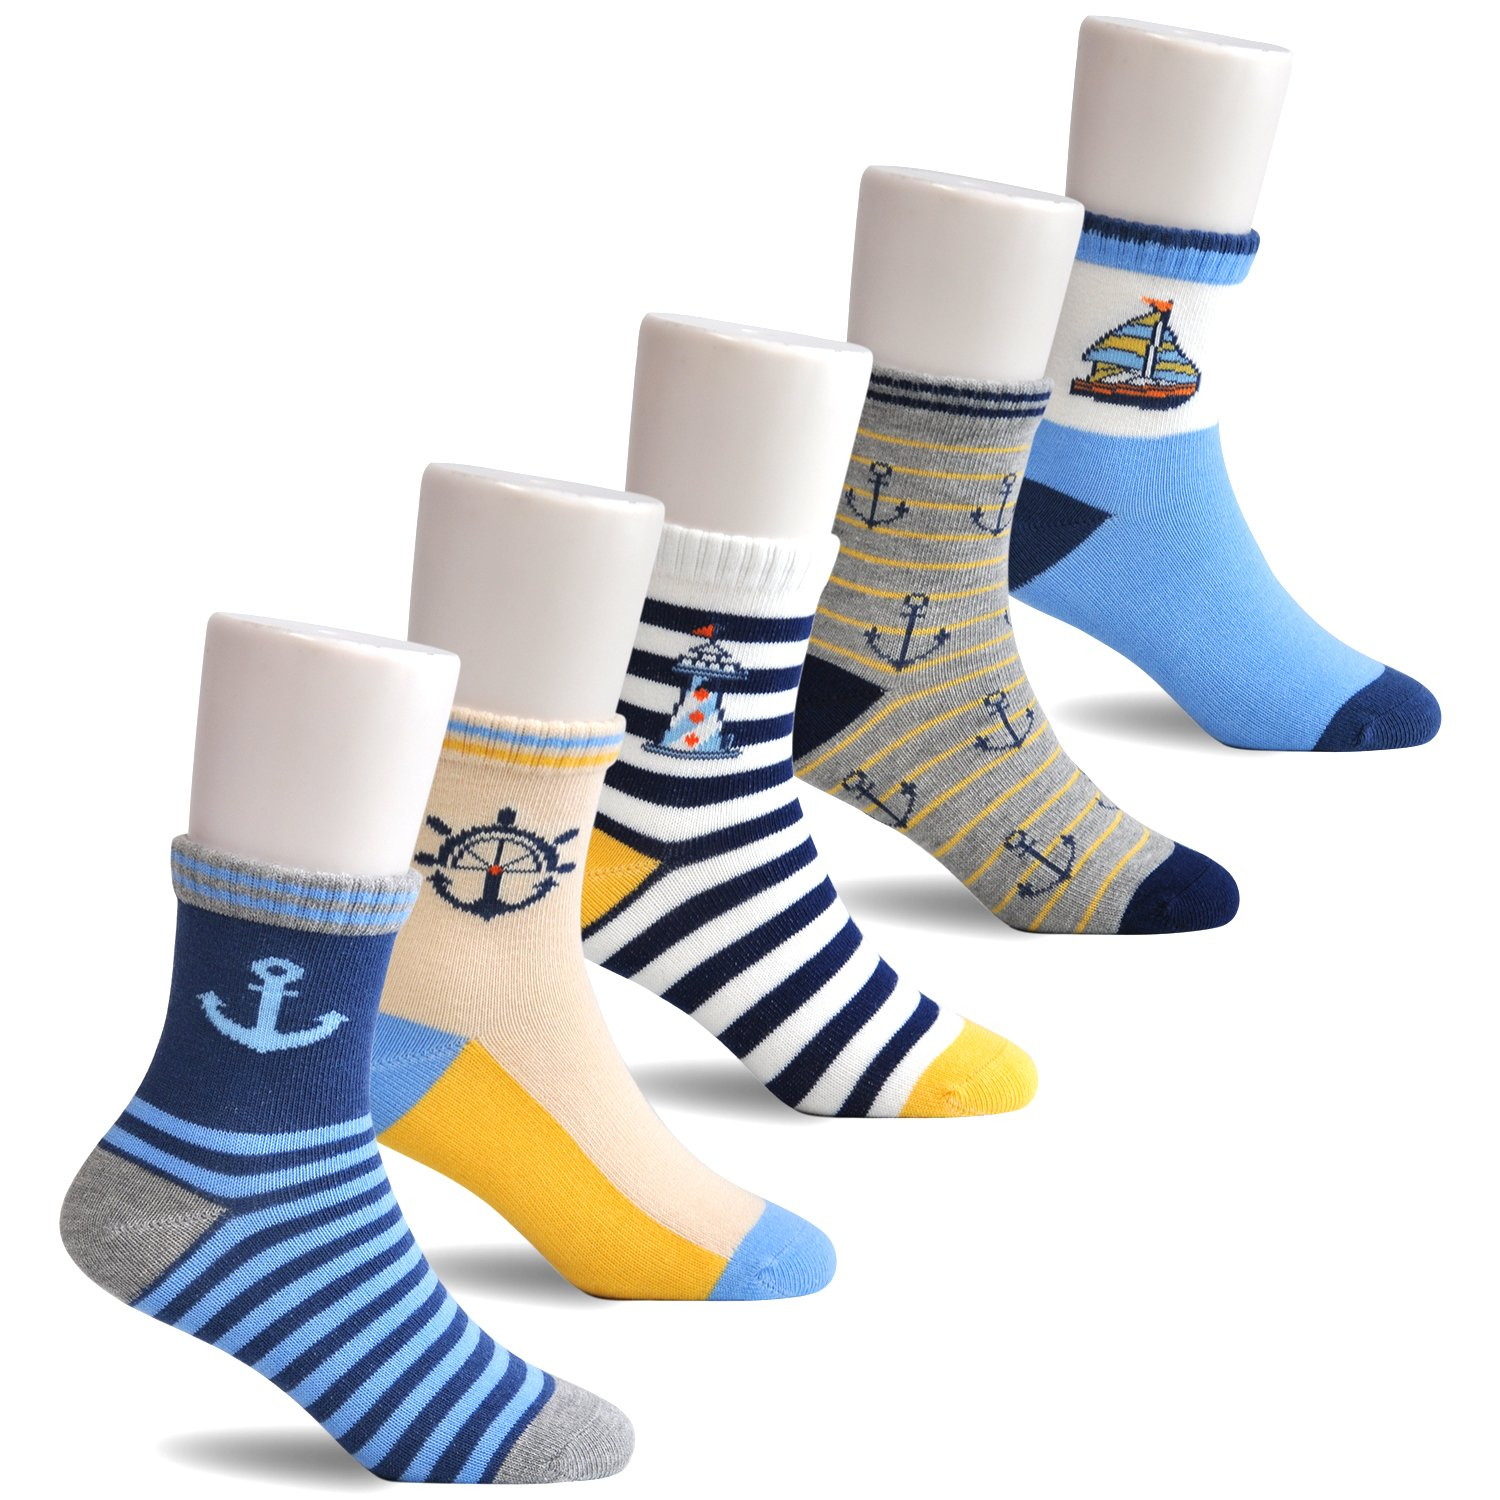 Epeius Kids Boys' 5 Pack Seamless Striped Crew Socks